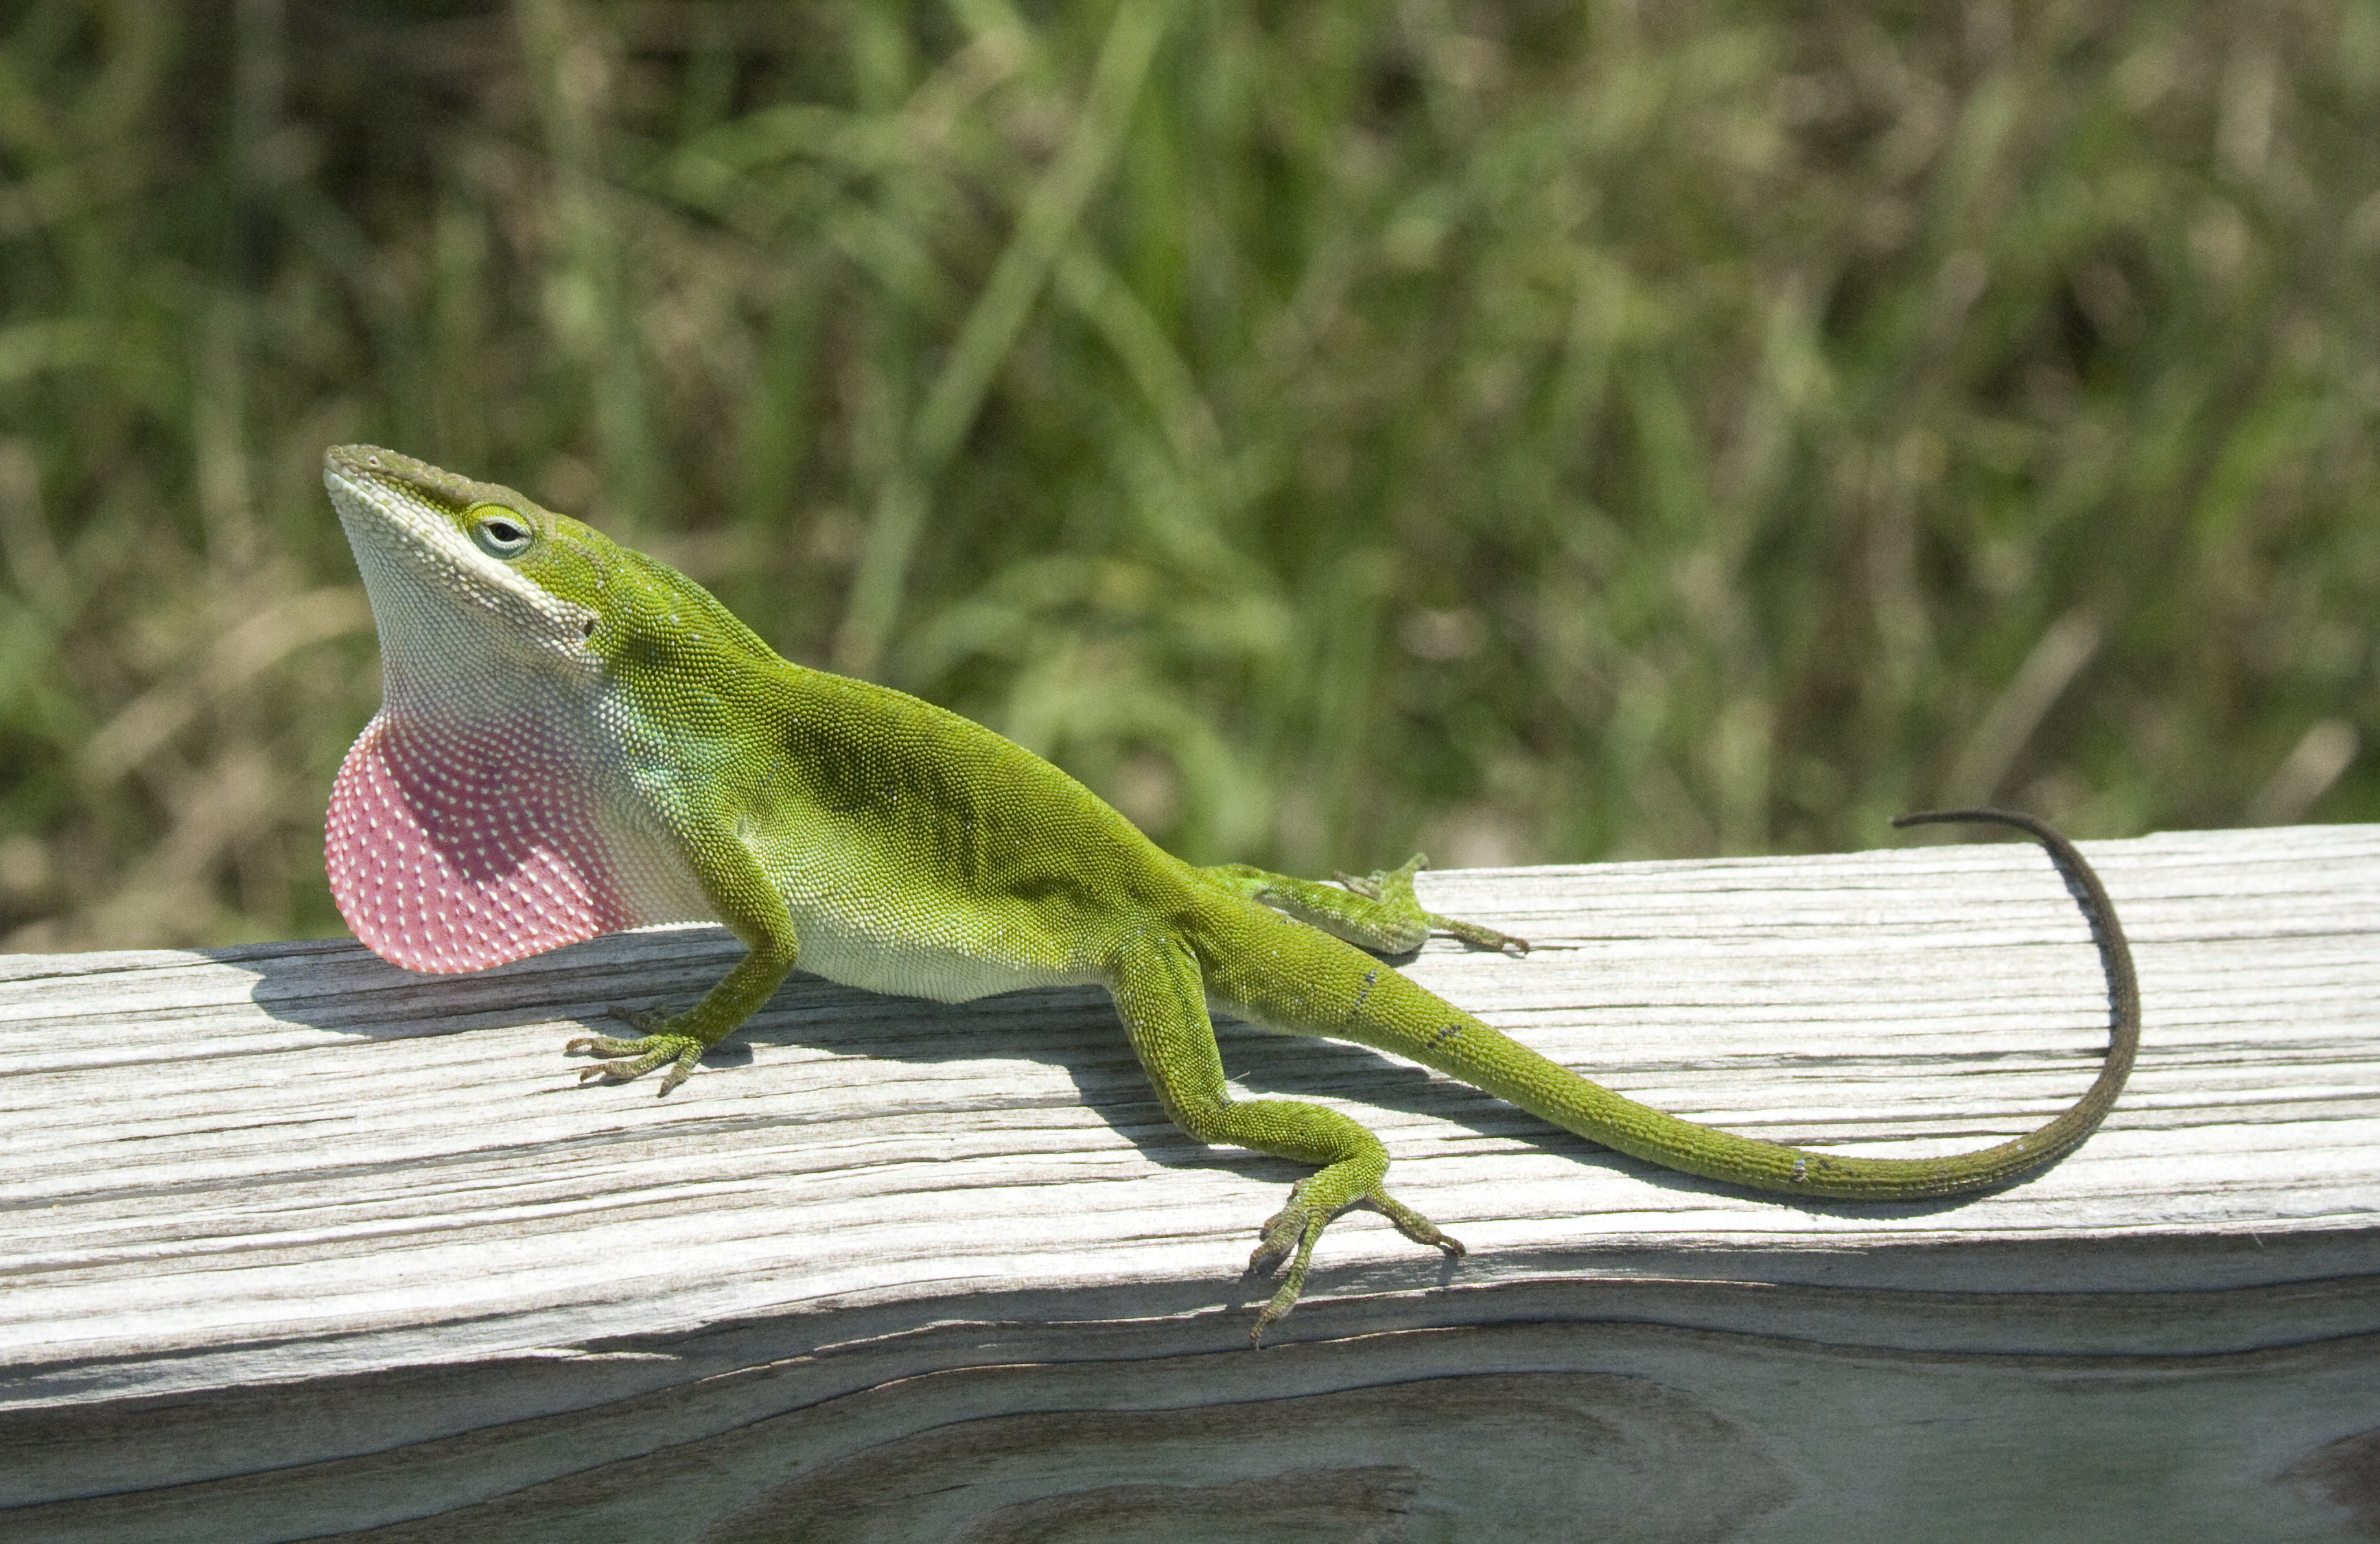 Carolina Green Anole by Jeff Heard